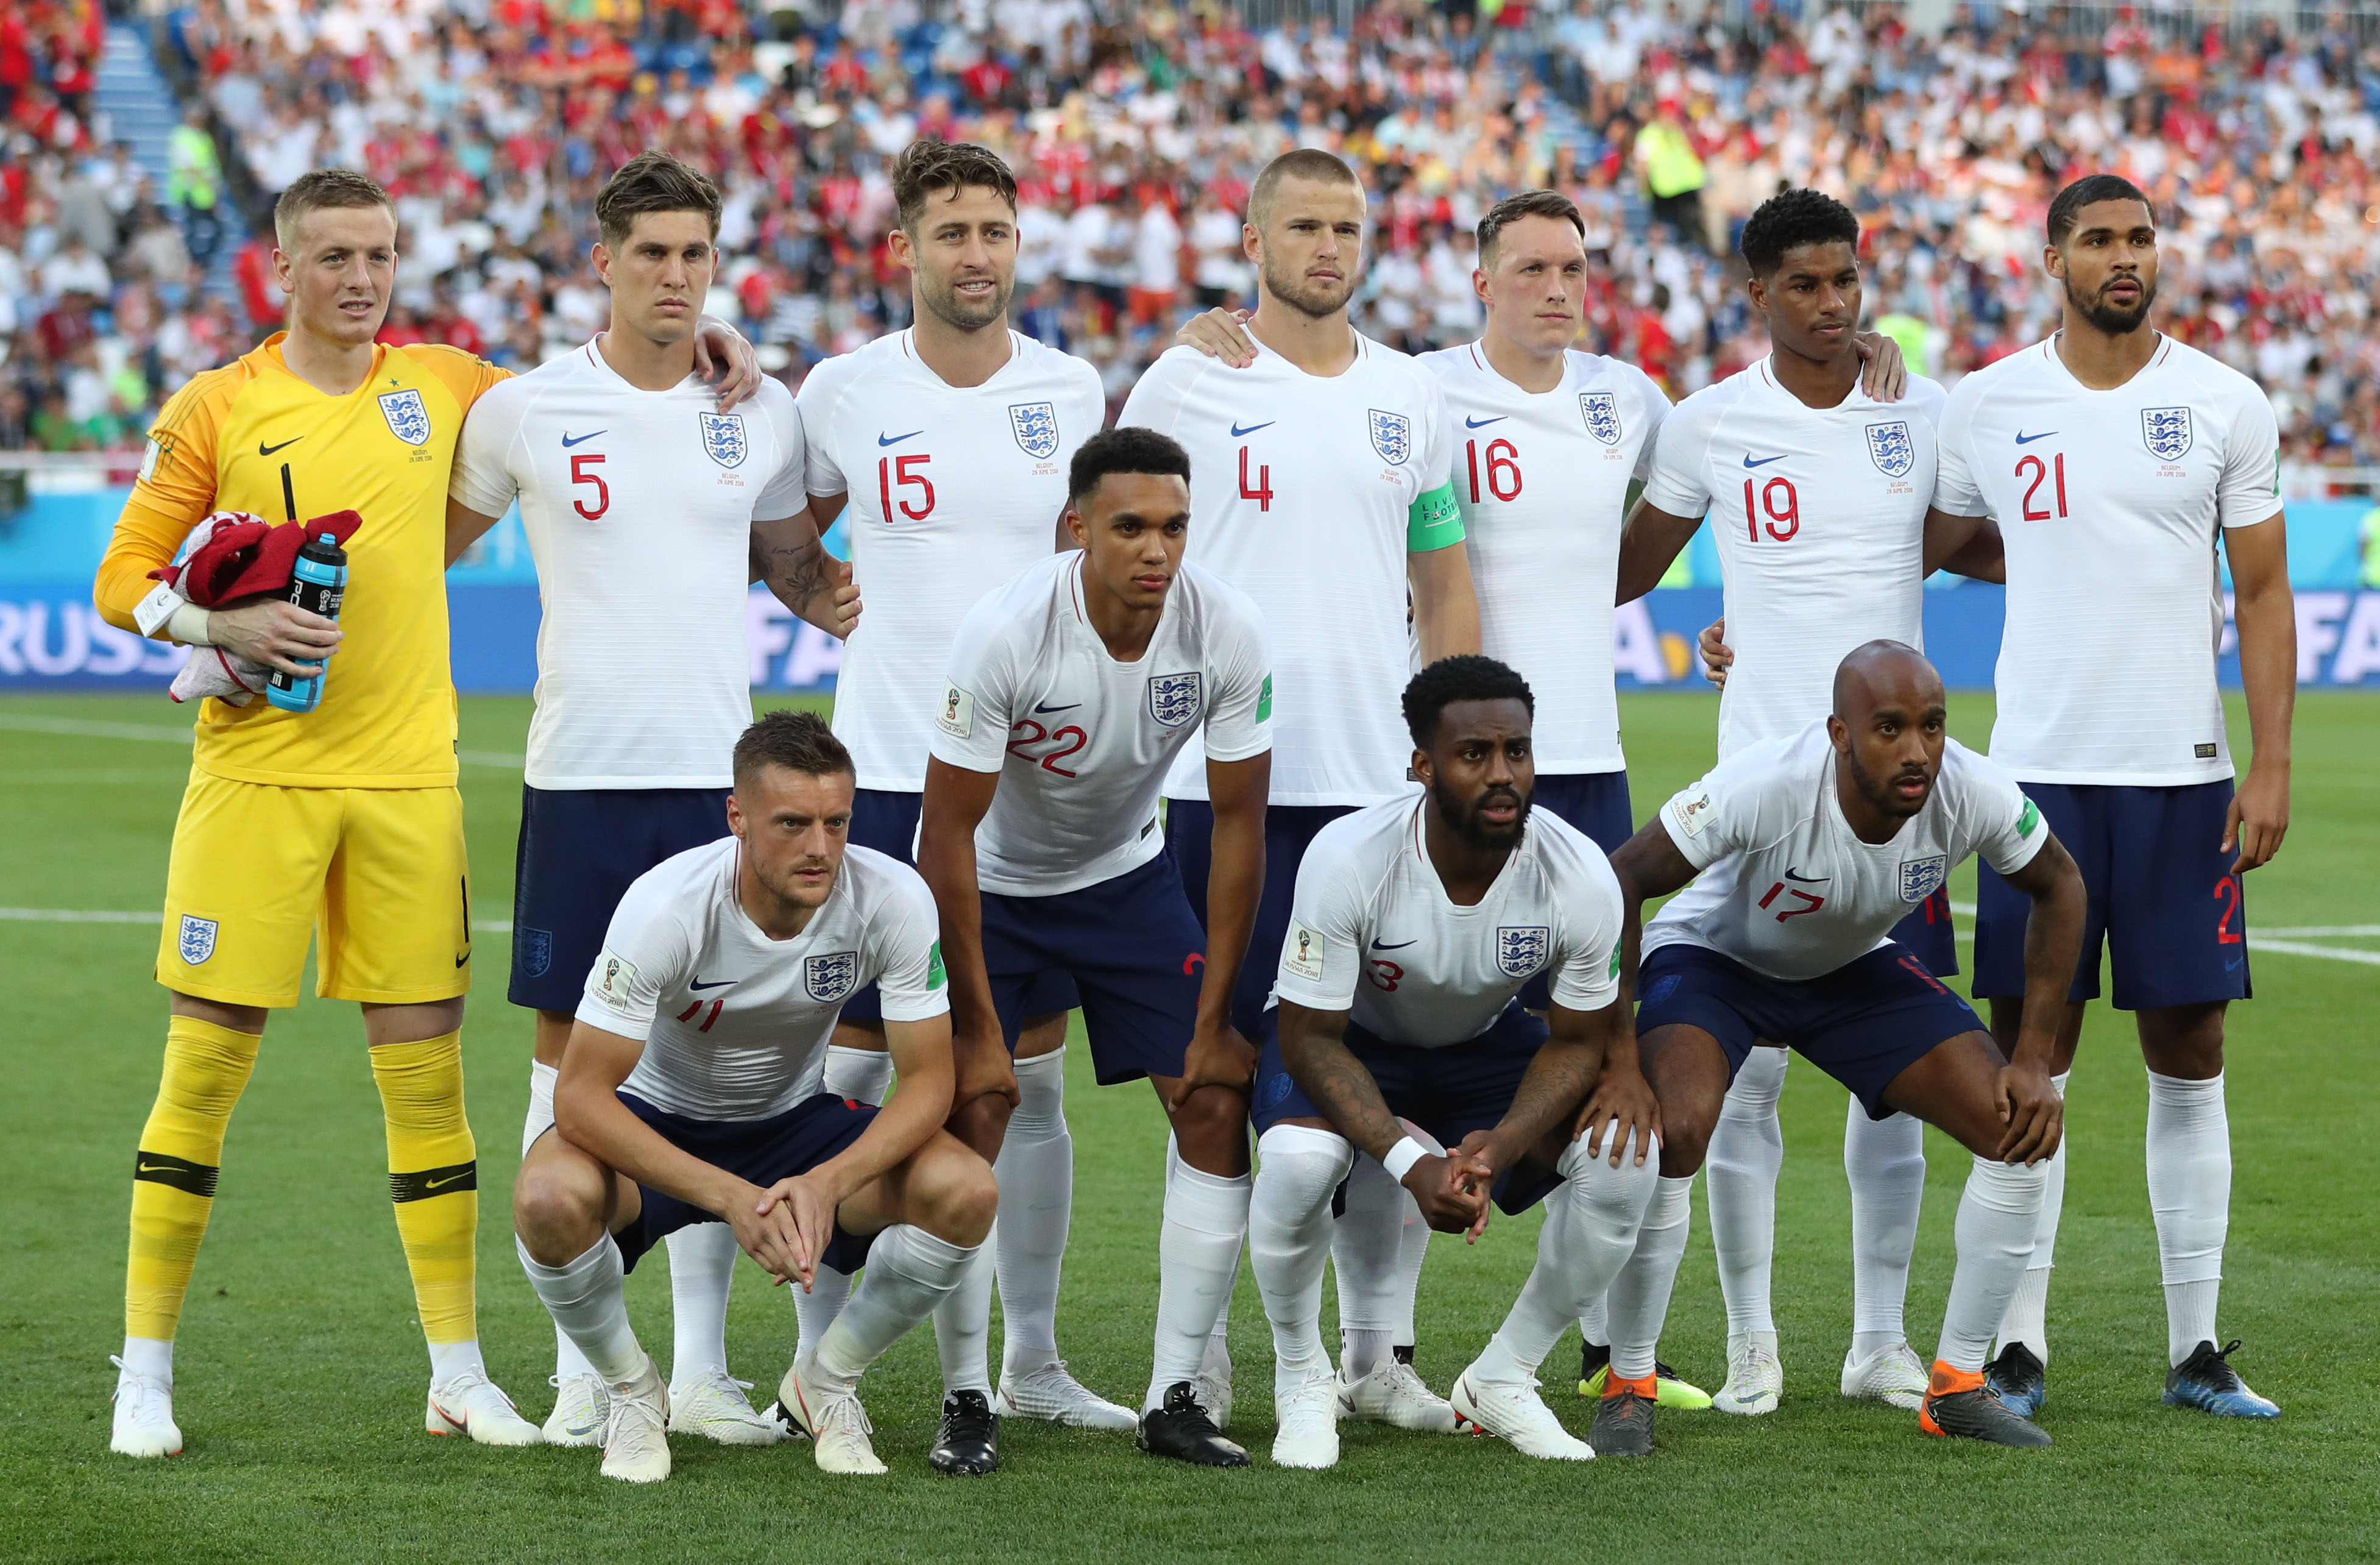 England line-up. Image: PA